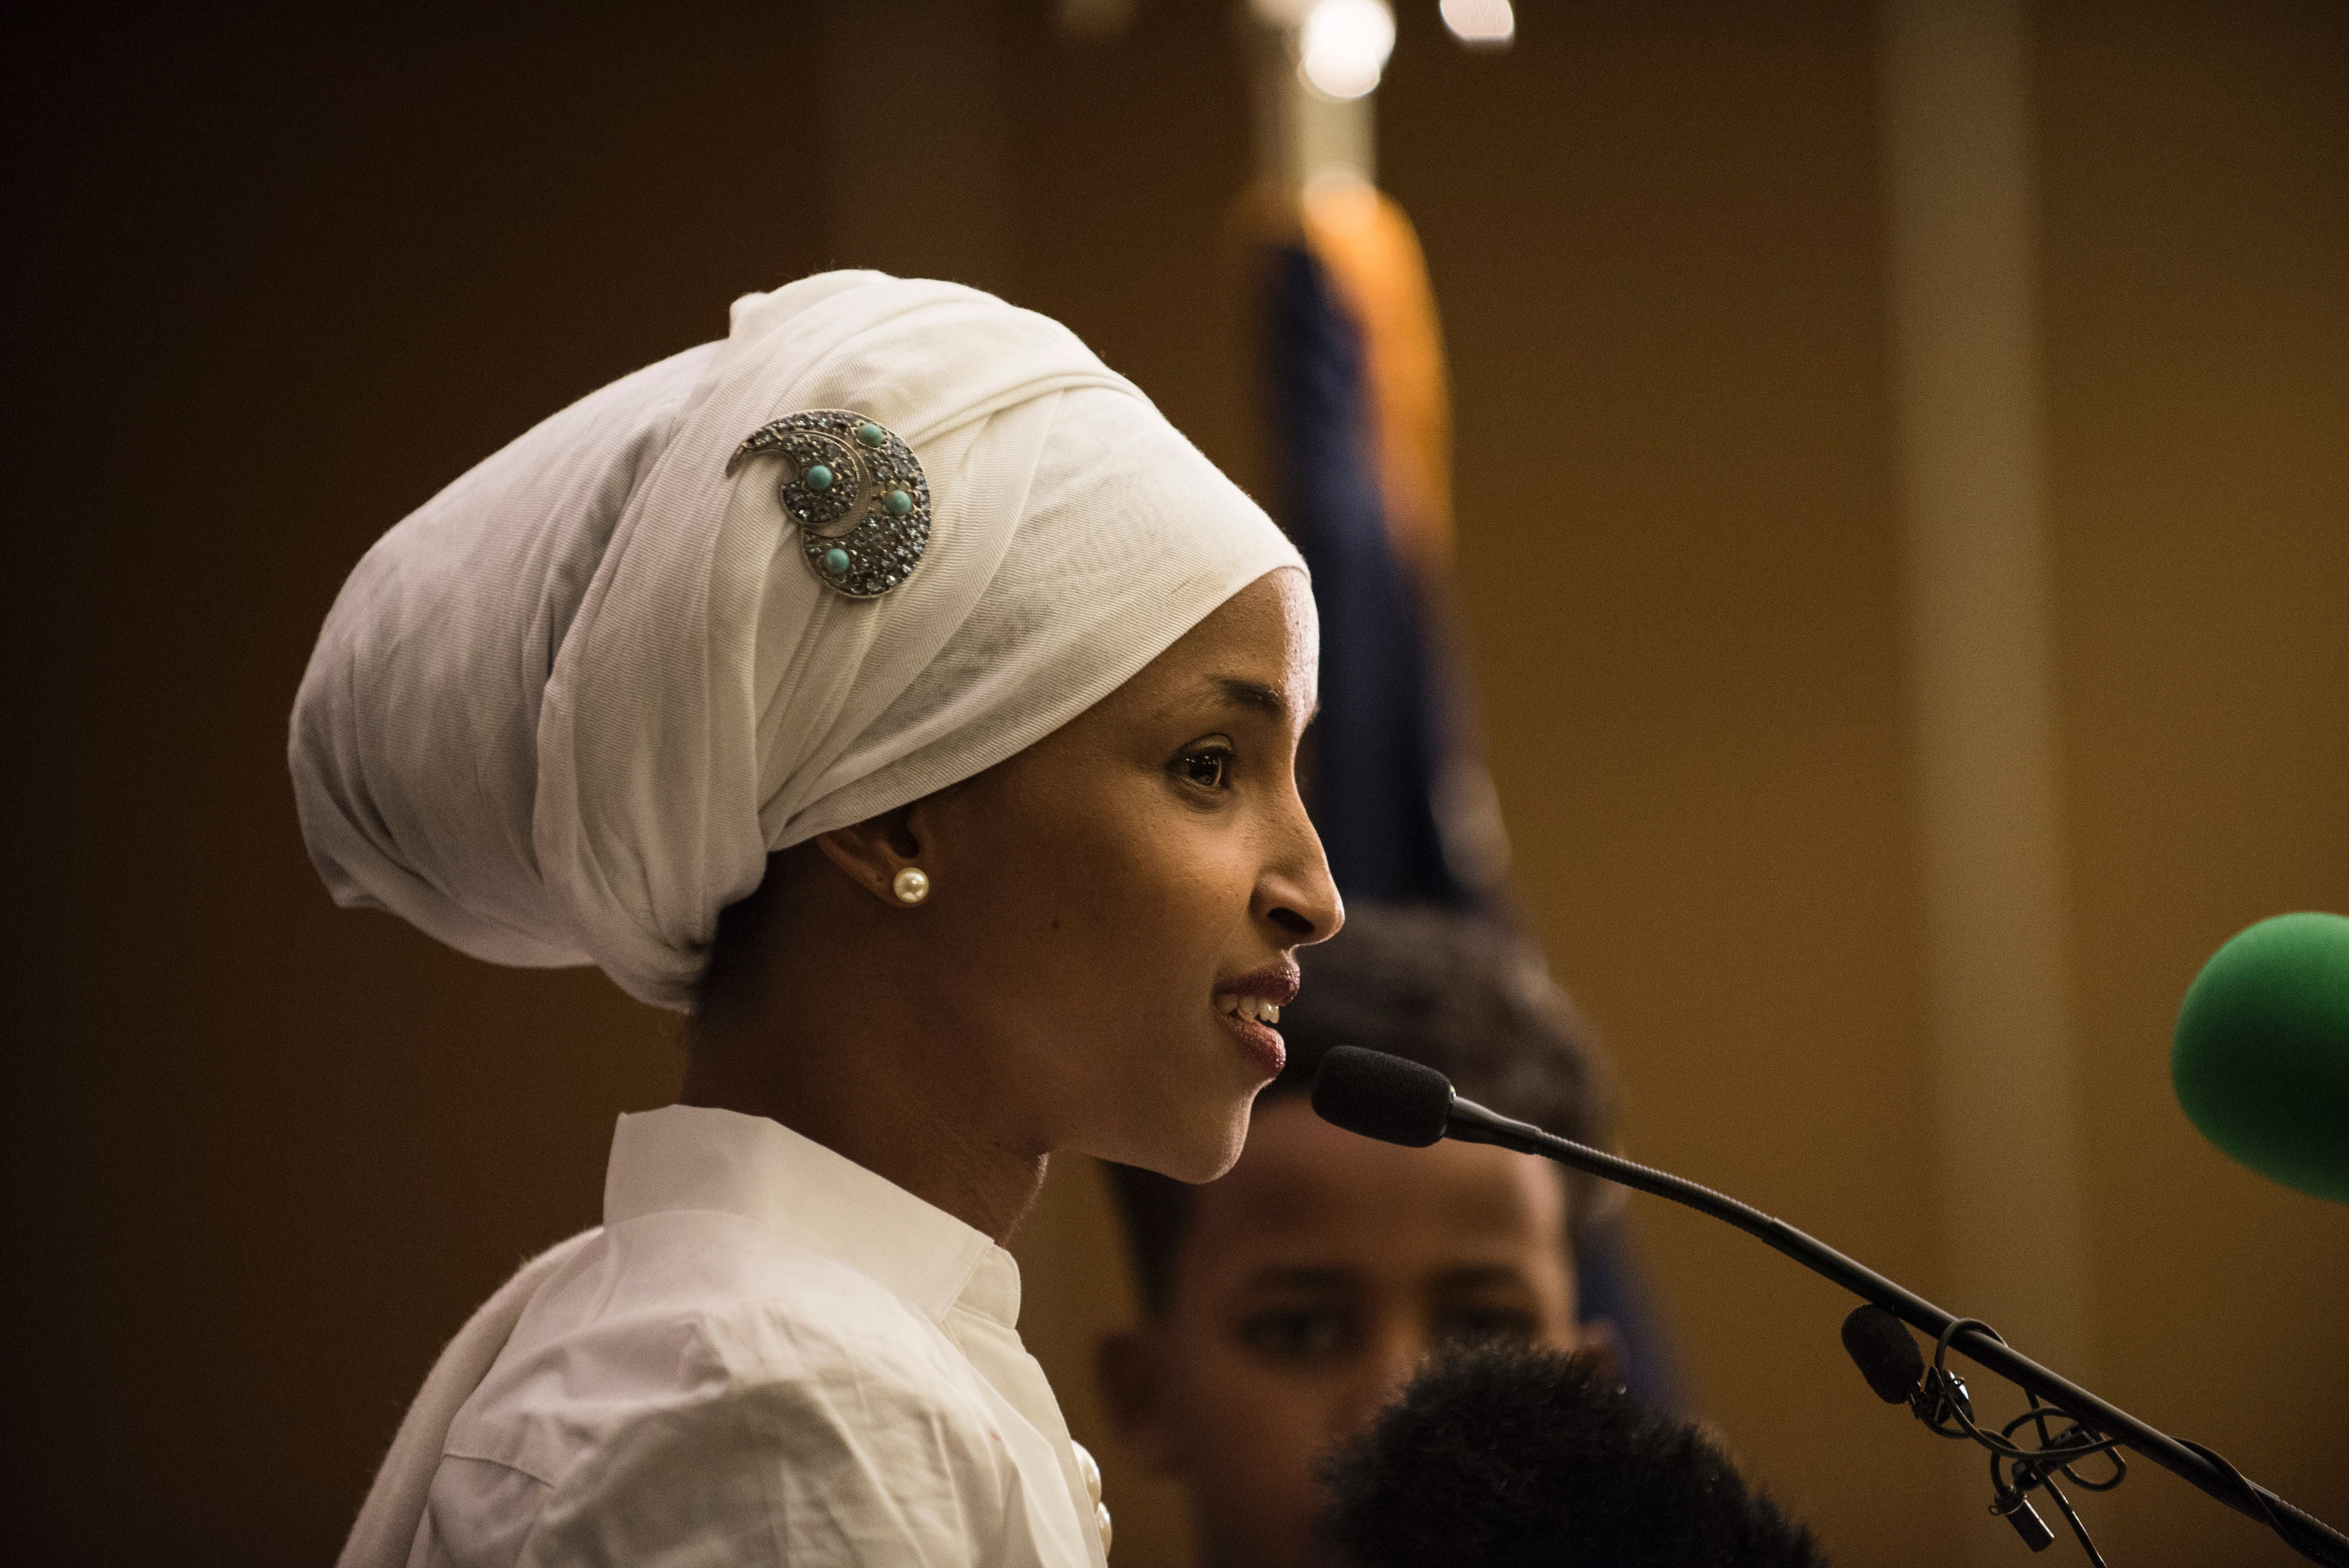 #IStandWithIlhan: Dems Support Rep. Ilhan Omar After Trump's Islamaphobic Tweet